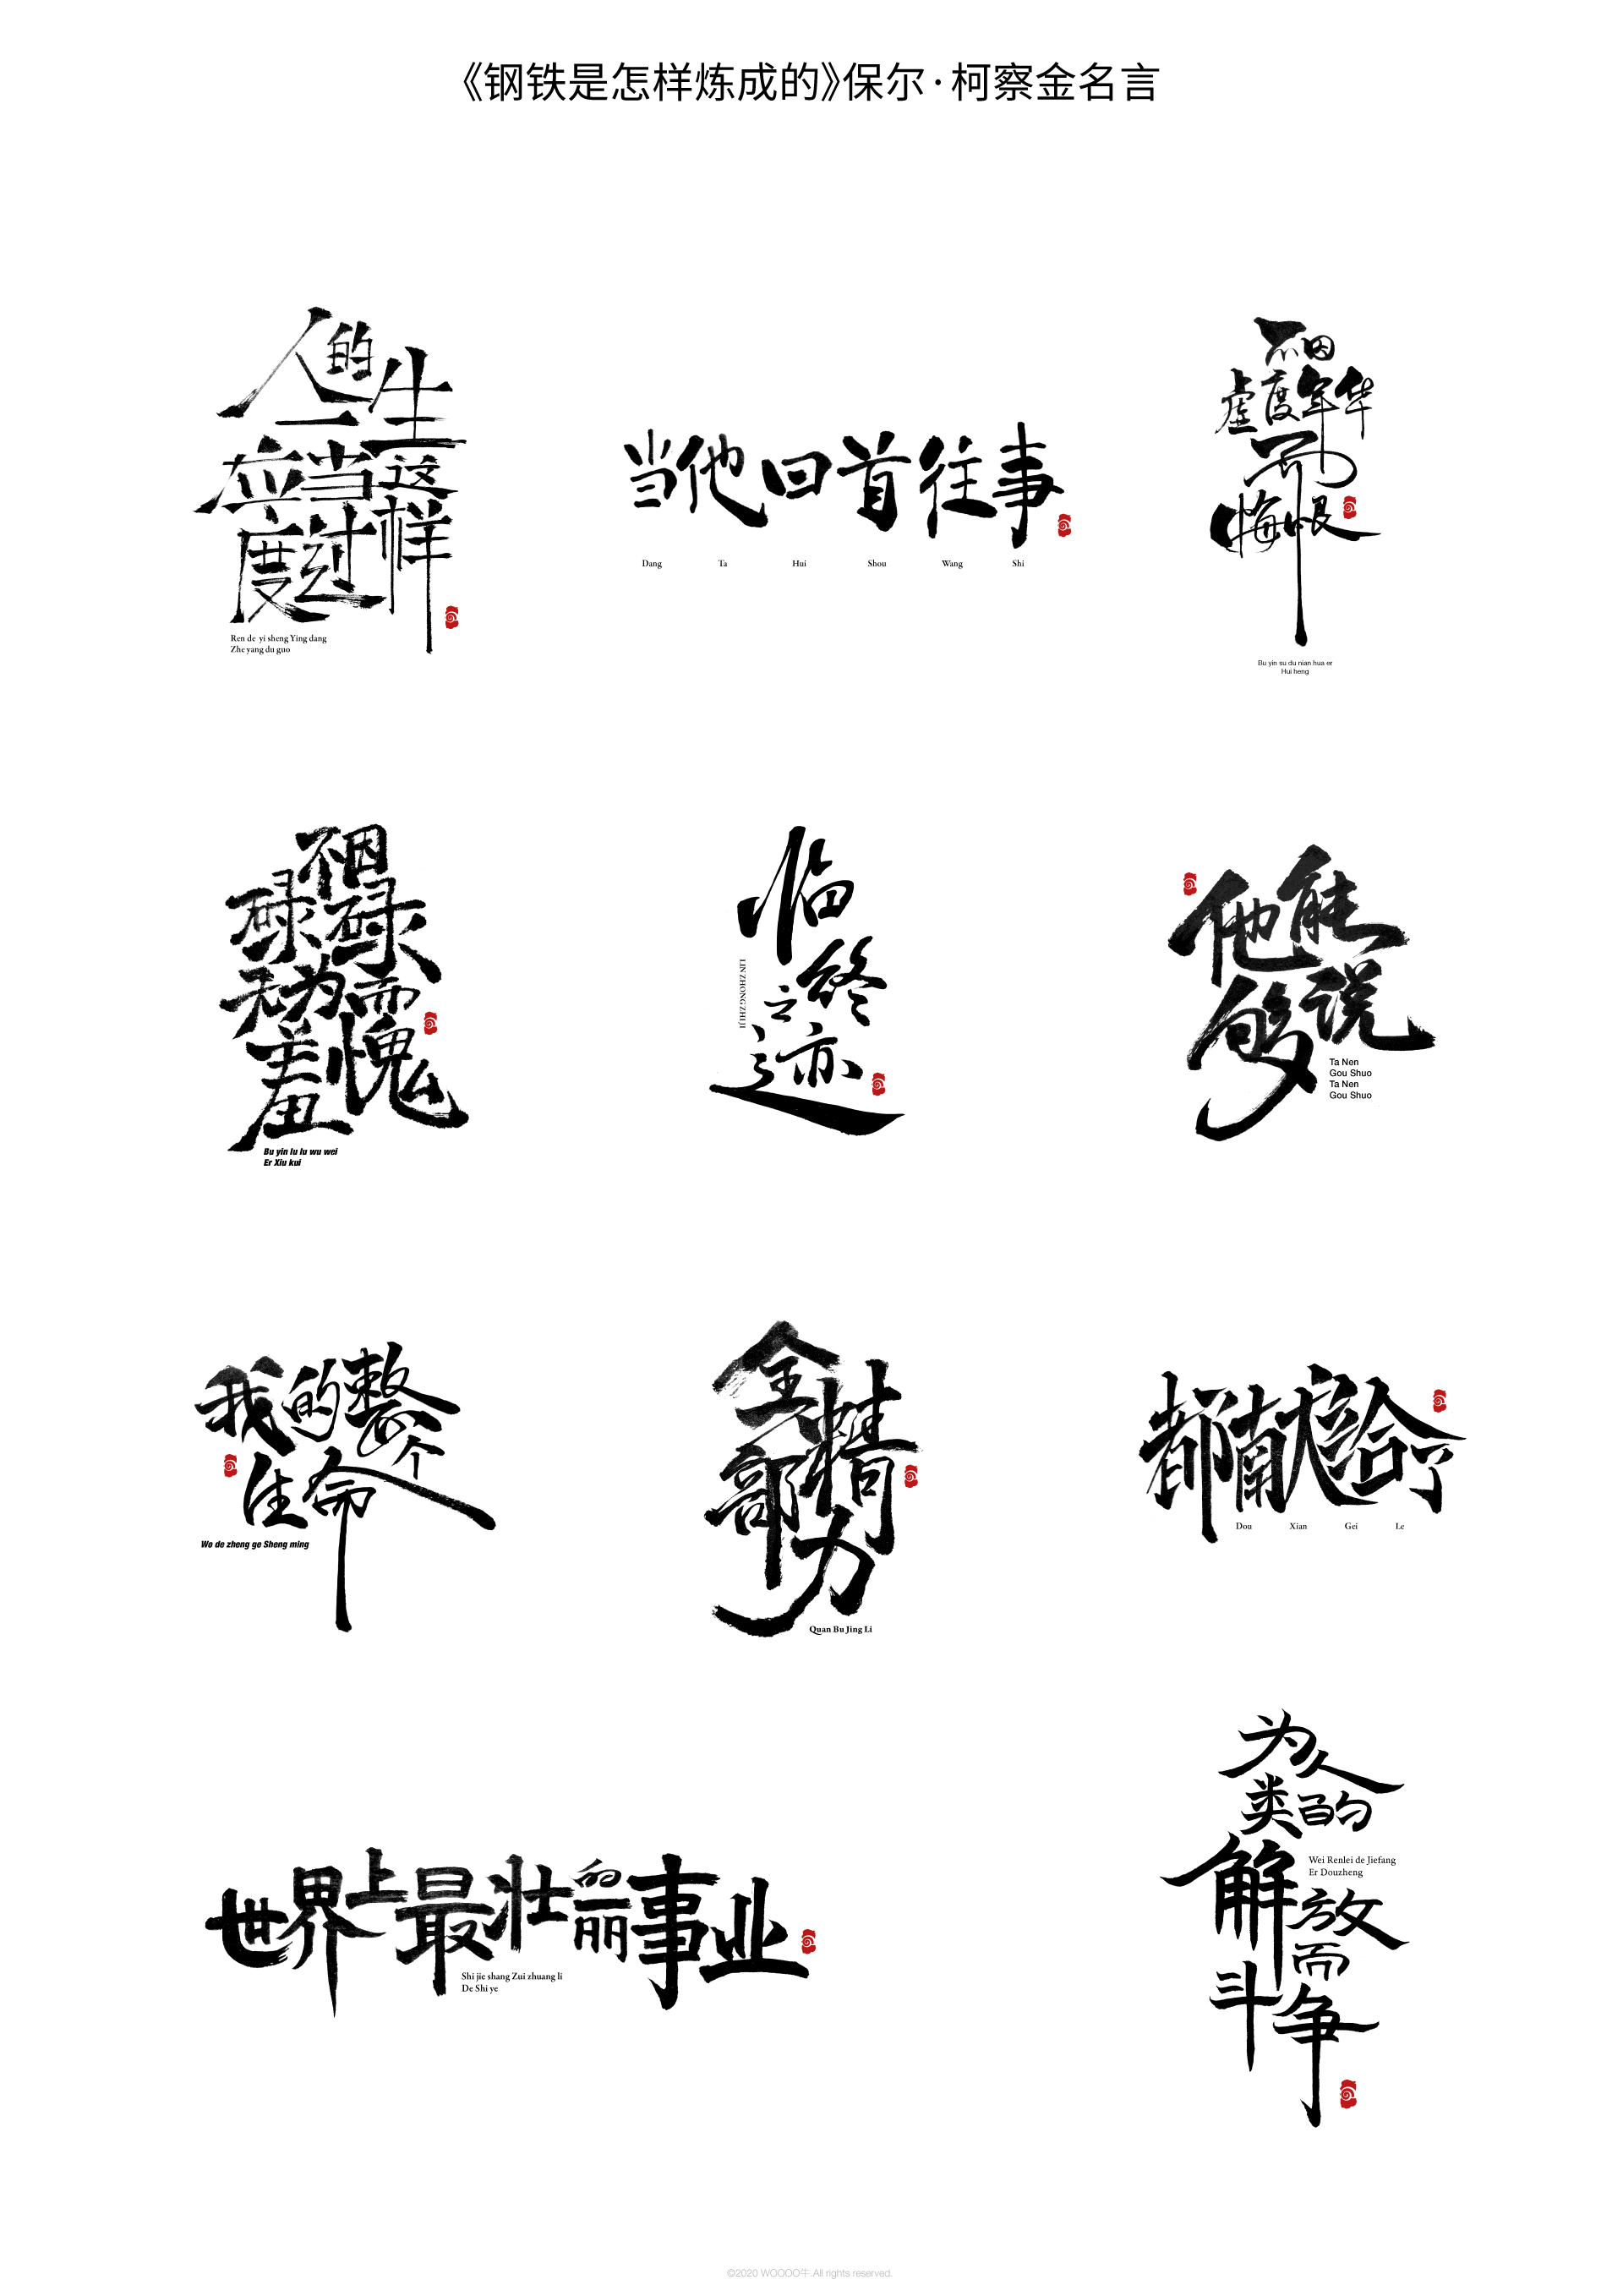 Chinese Creative Writing Brush Font Design-Kochakin's famous saying